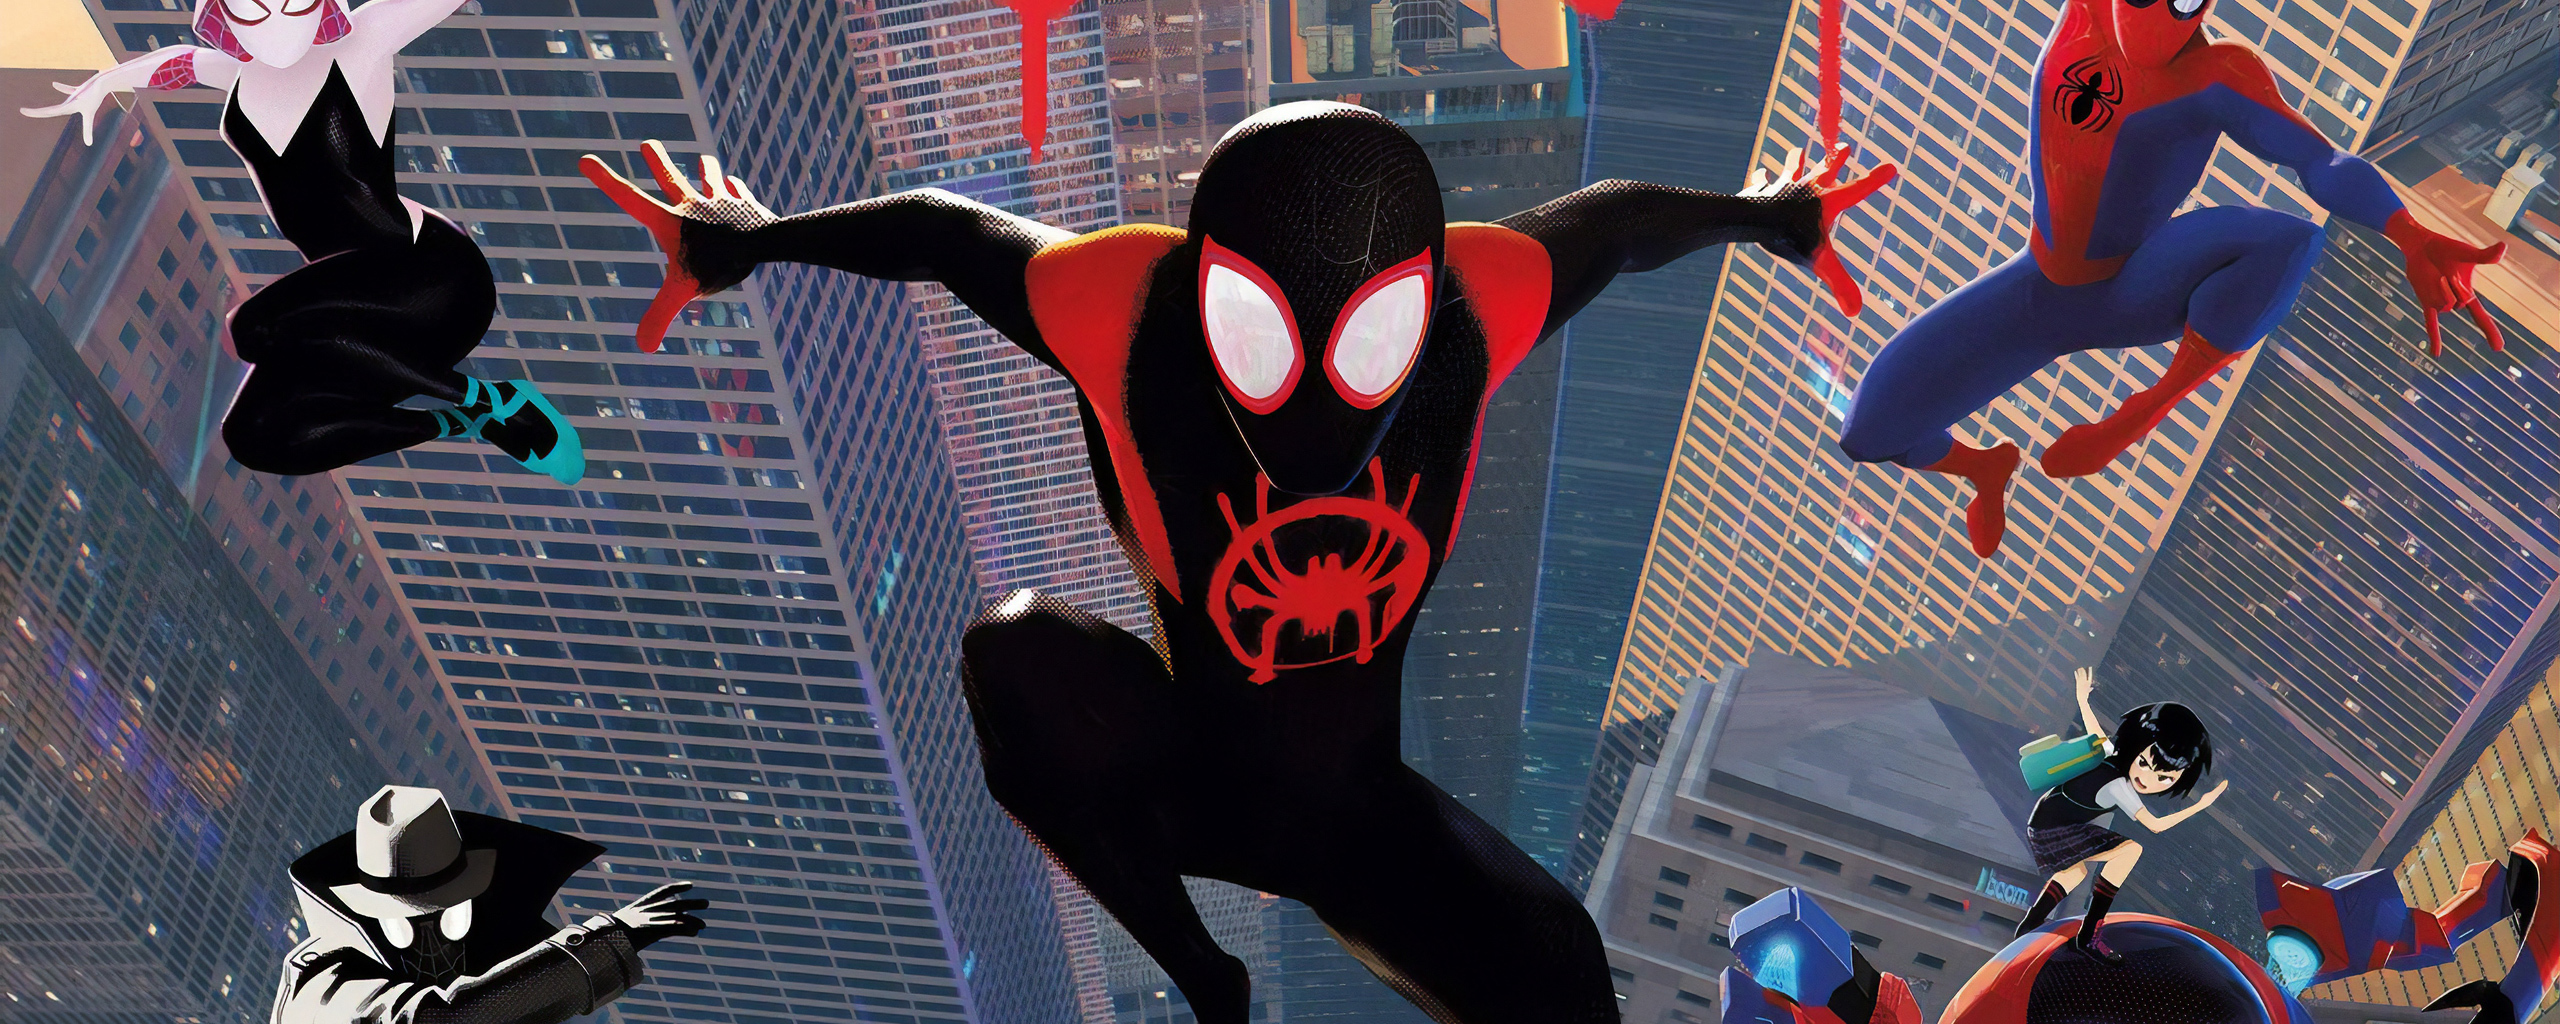 spiderman-into-the-spider-verse-new-poster-art-yd.jpg